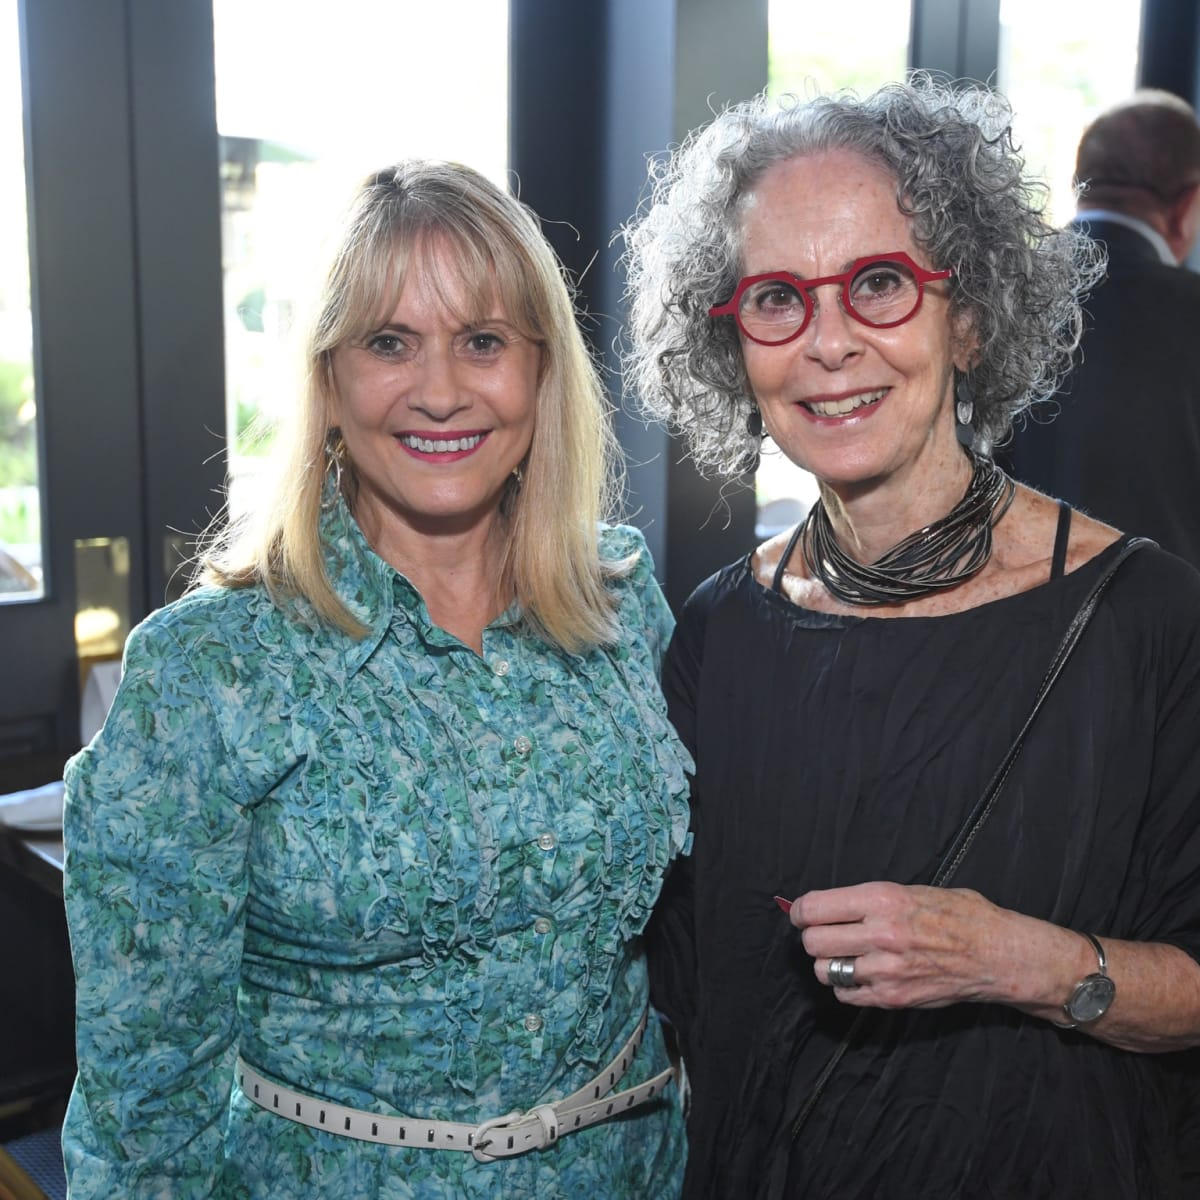 Blue Plate Special kick off, Sharon Brier, Avril Danziger